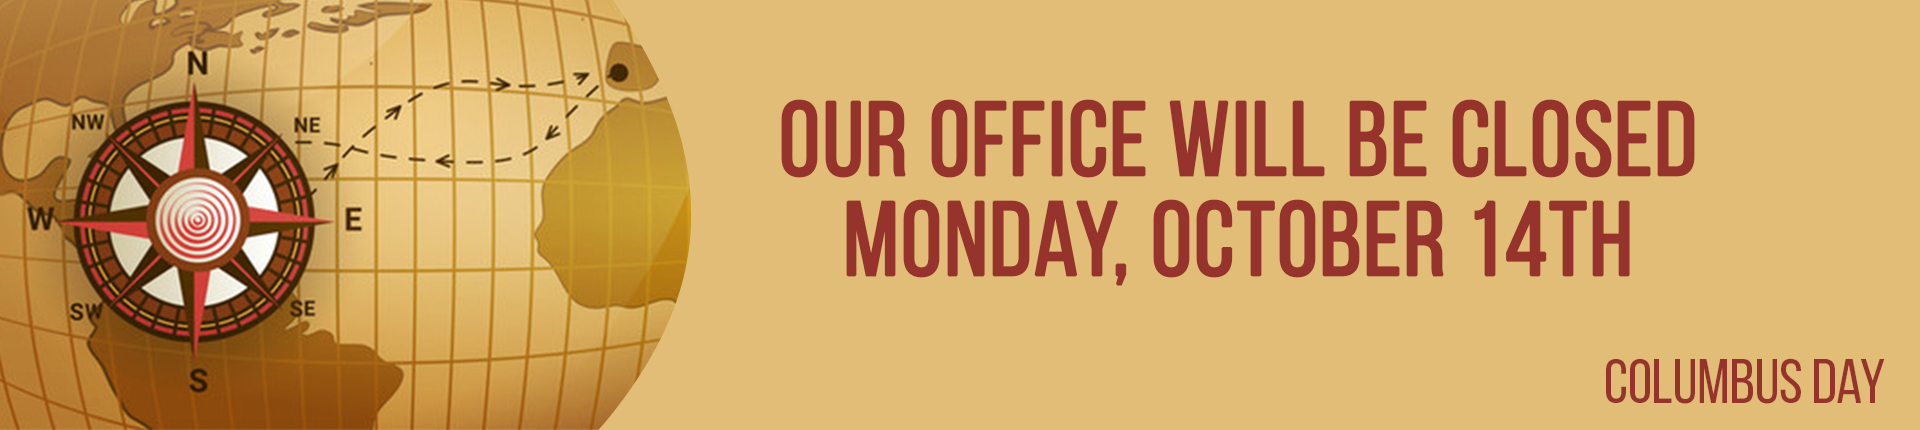 Our office will be closed on MOnday, October 14th